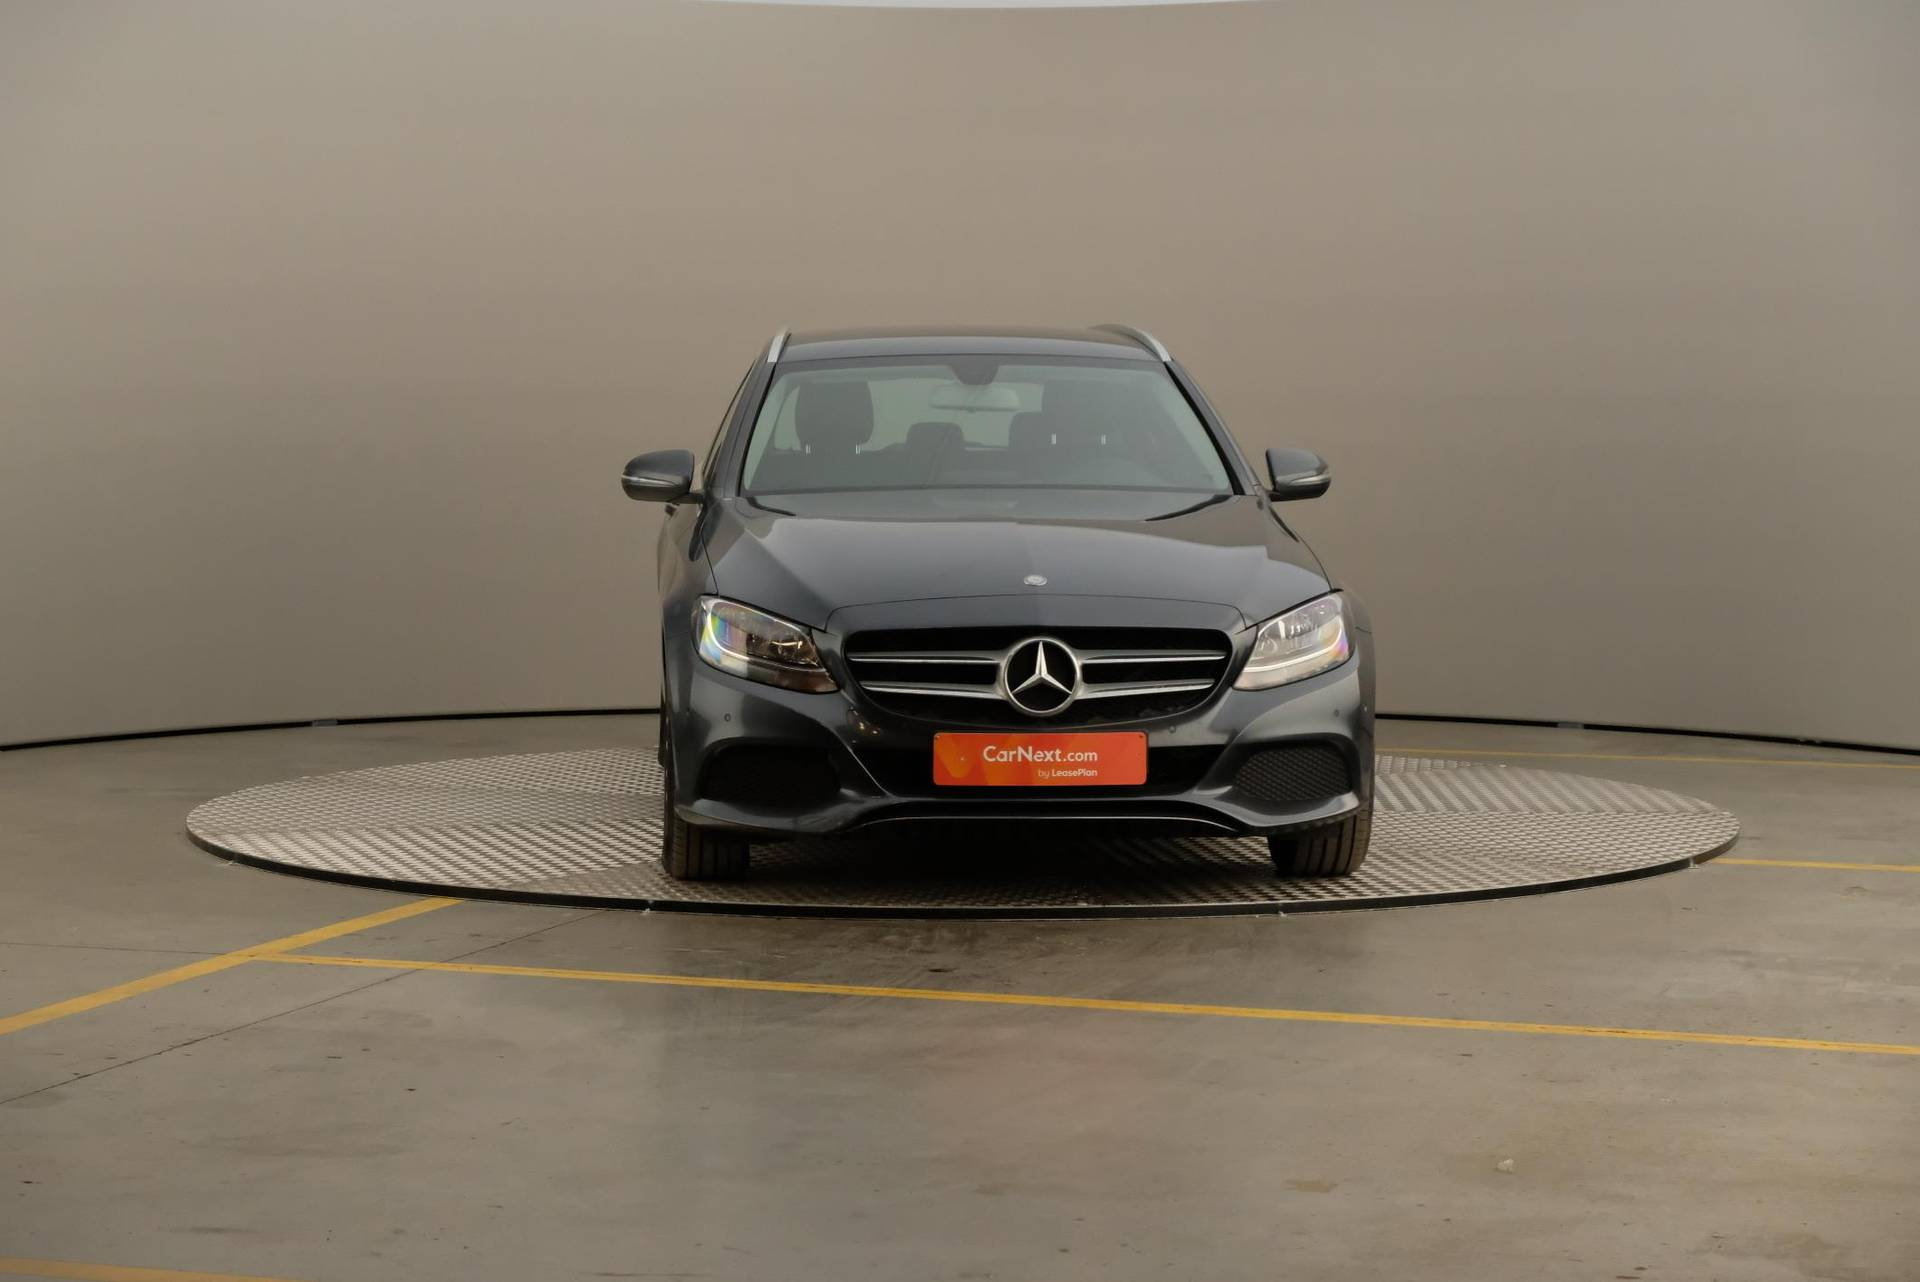 Mercedes-Benz C-Klasse 180 d PACK AVANTGARDE PACK EASY GPS PDC TREKHAAK EURO 6.., 360-image31